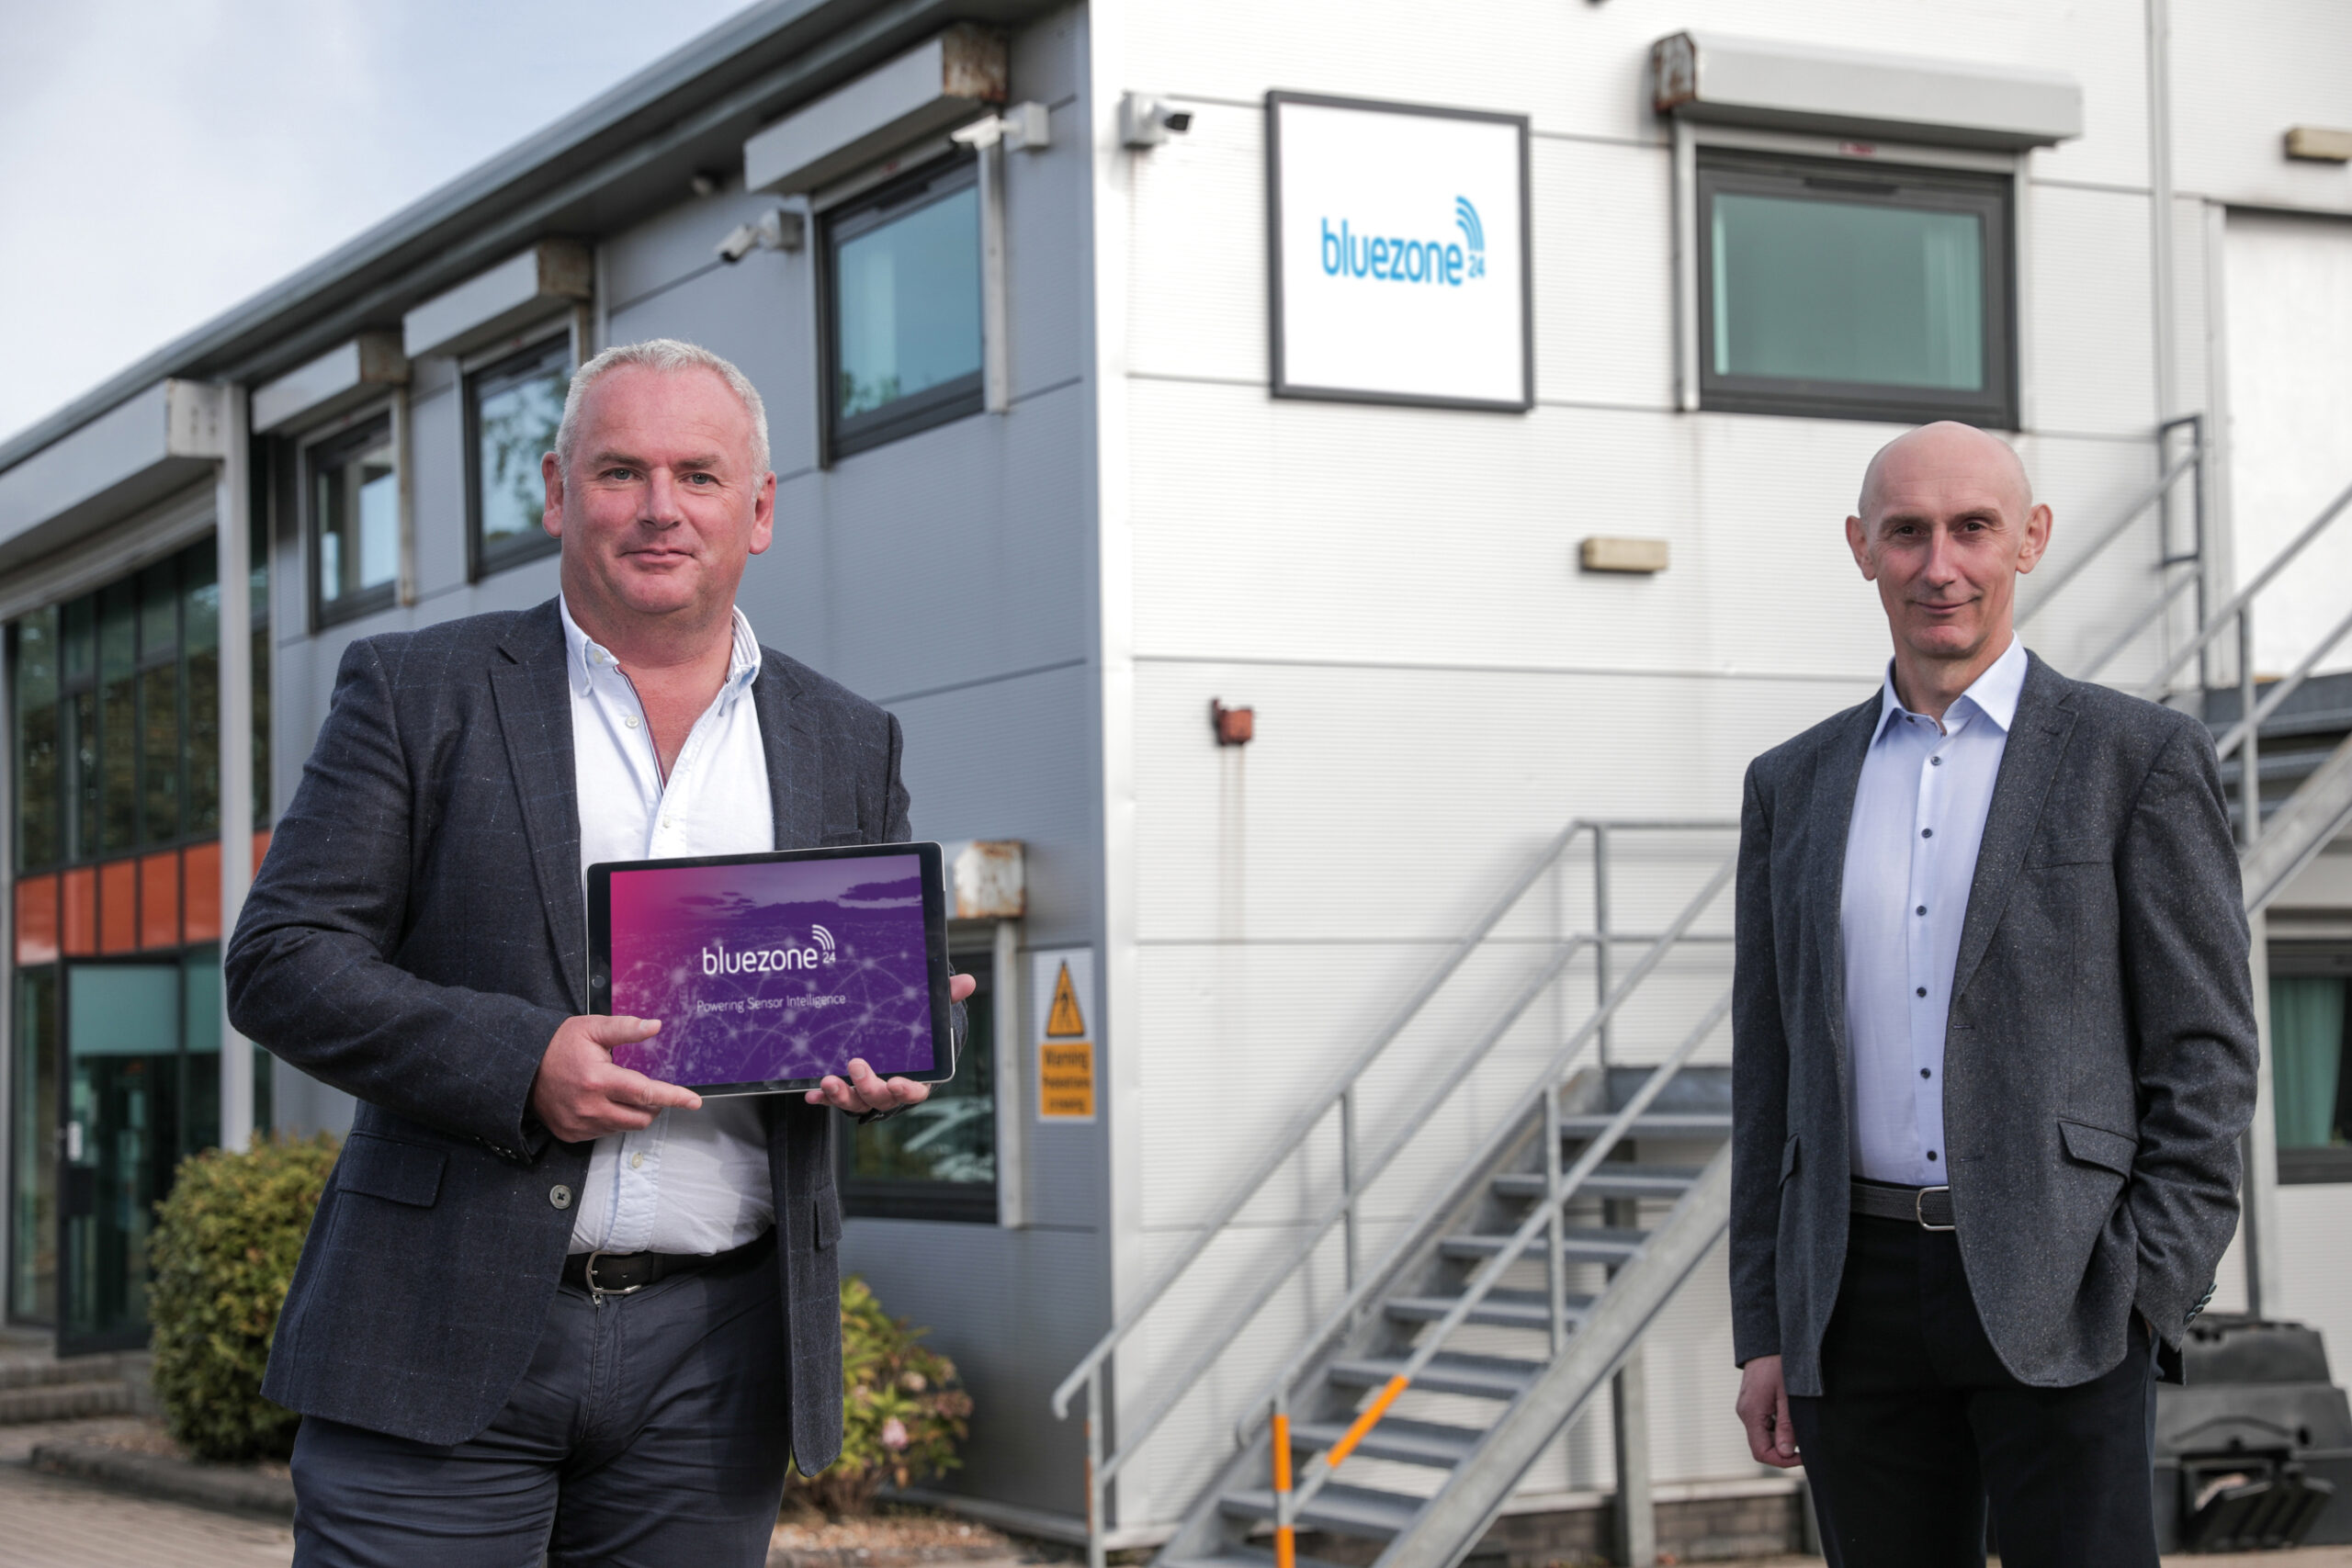 Newry's Bluezone Technologies invests over £685k in sensor technology to combat Legionella outbreaks following Covid-19 lockdown - Newry business